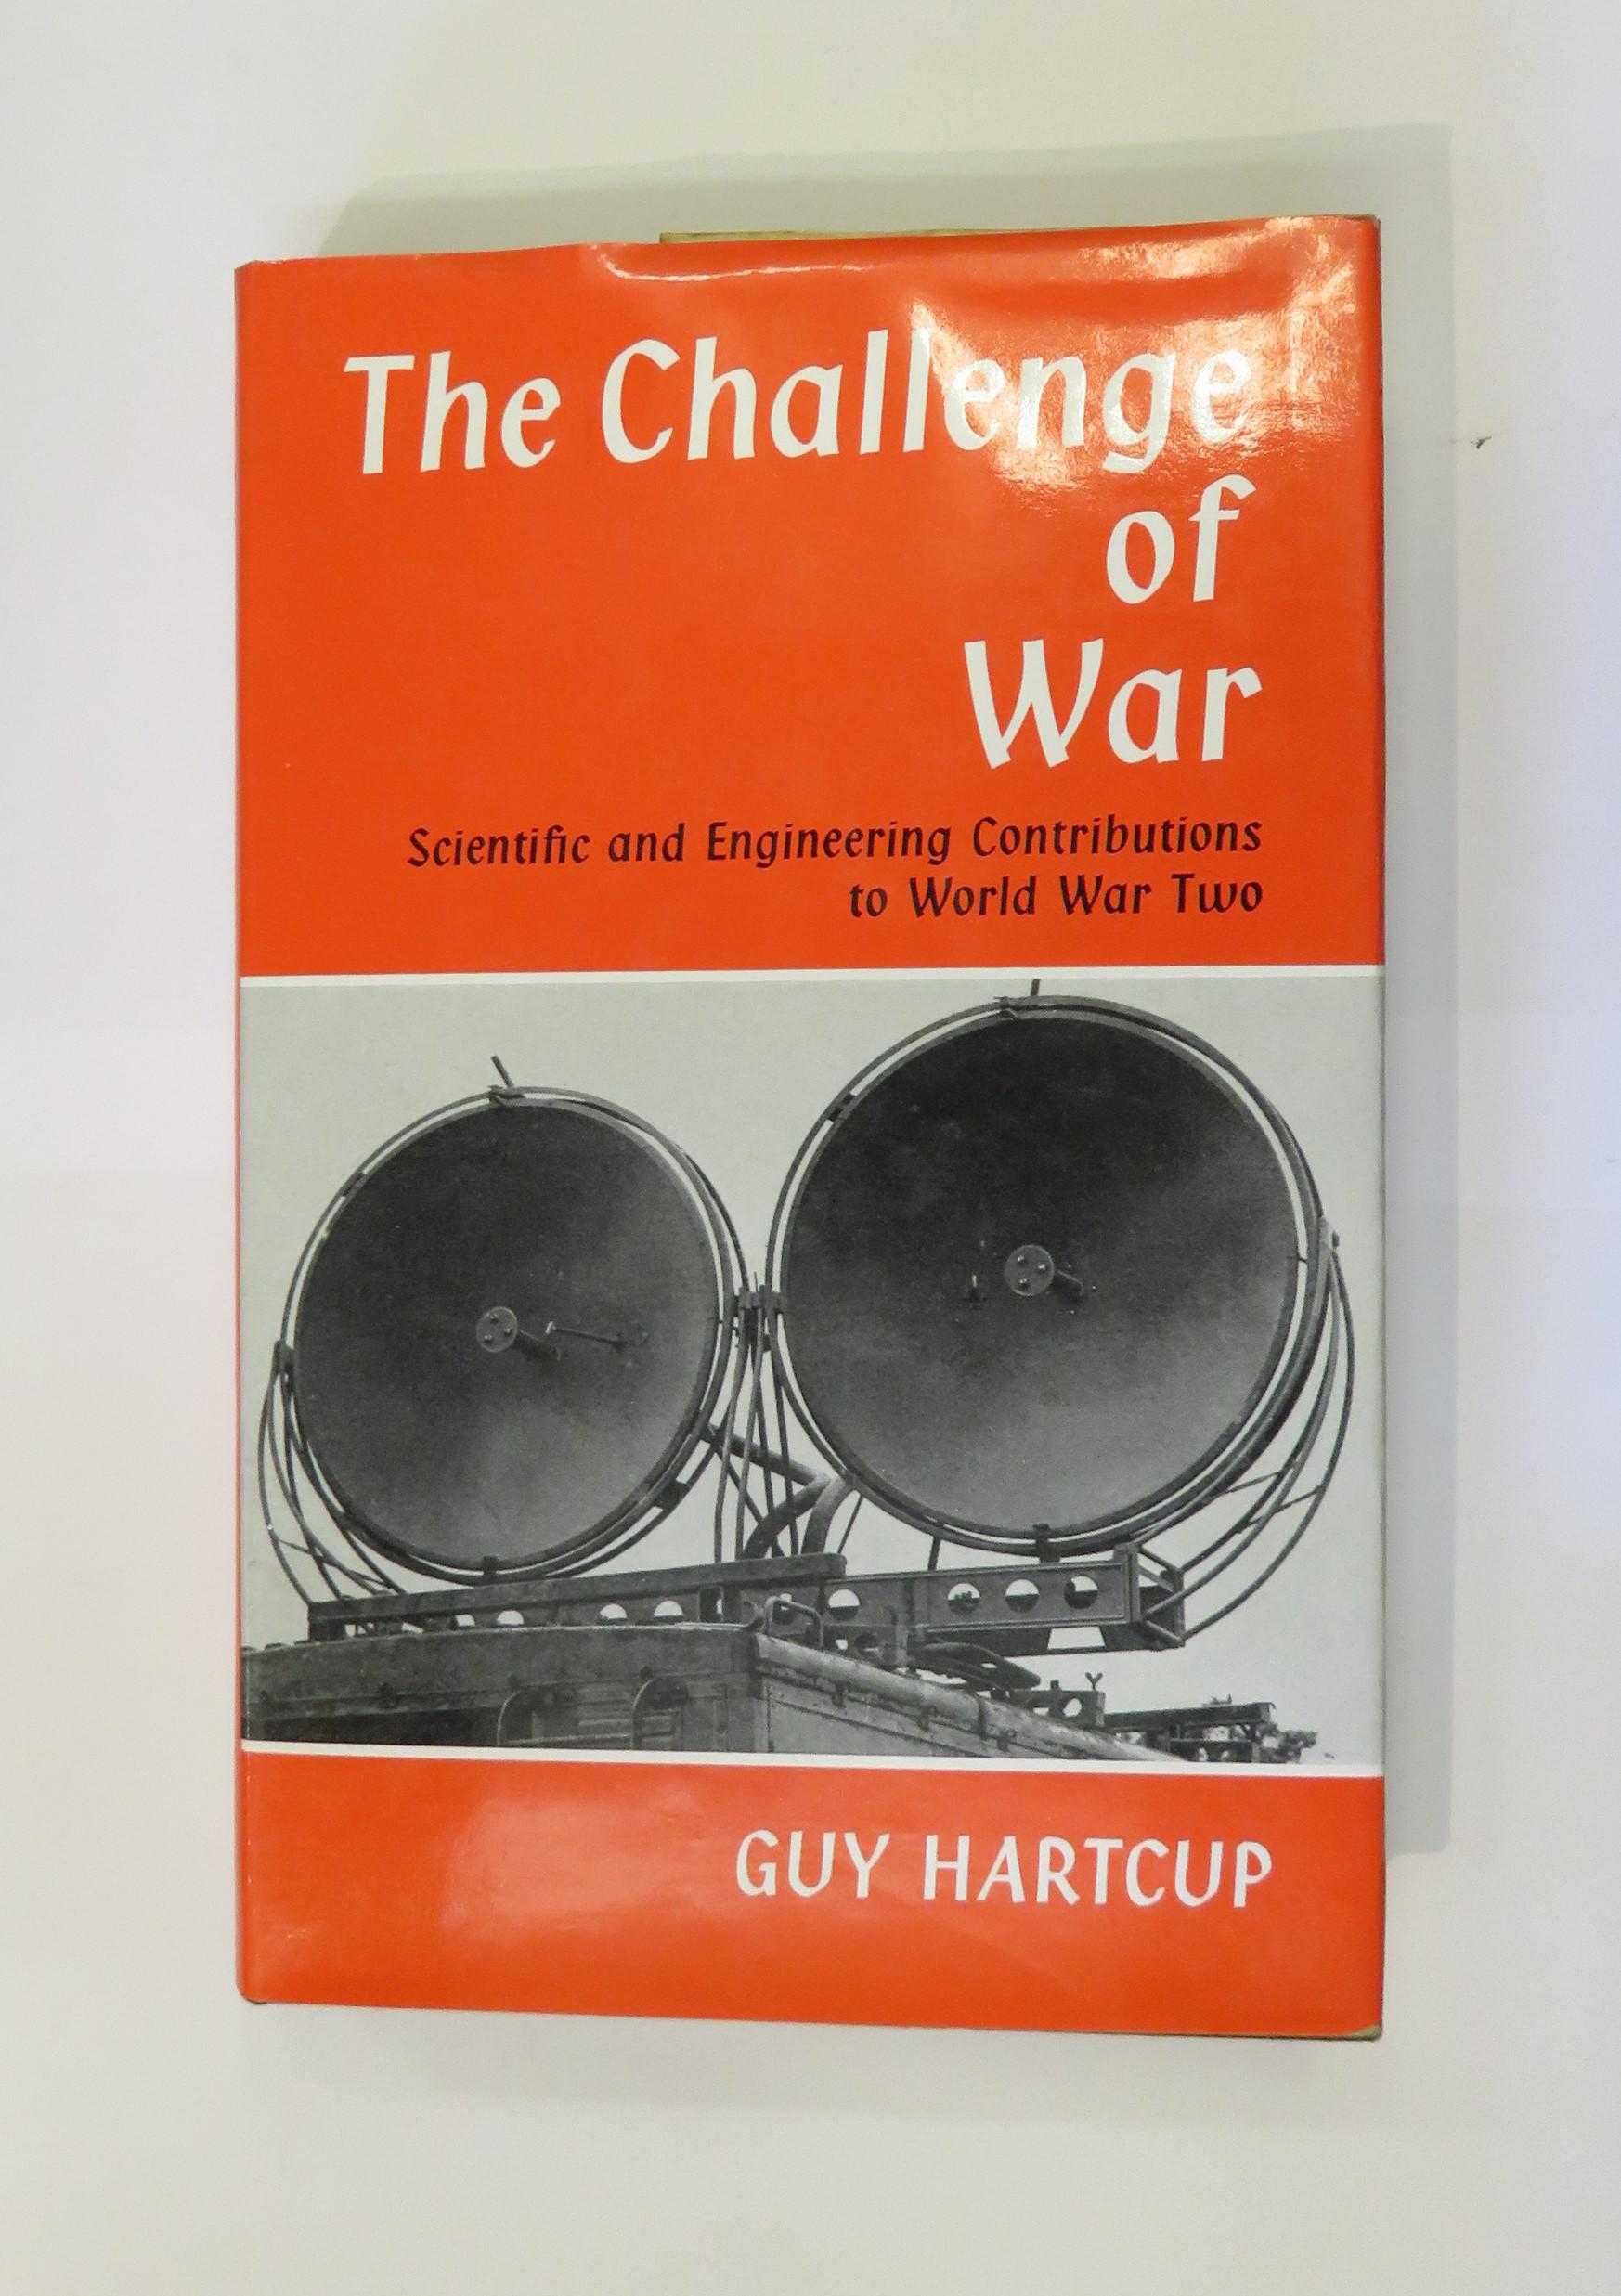 The Challenge of War: Scientific and Engineering Contributions to World War Two